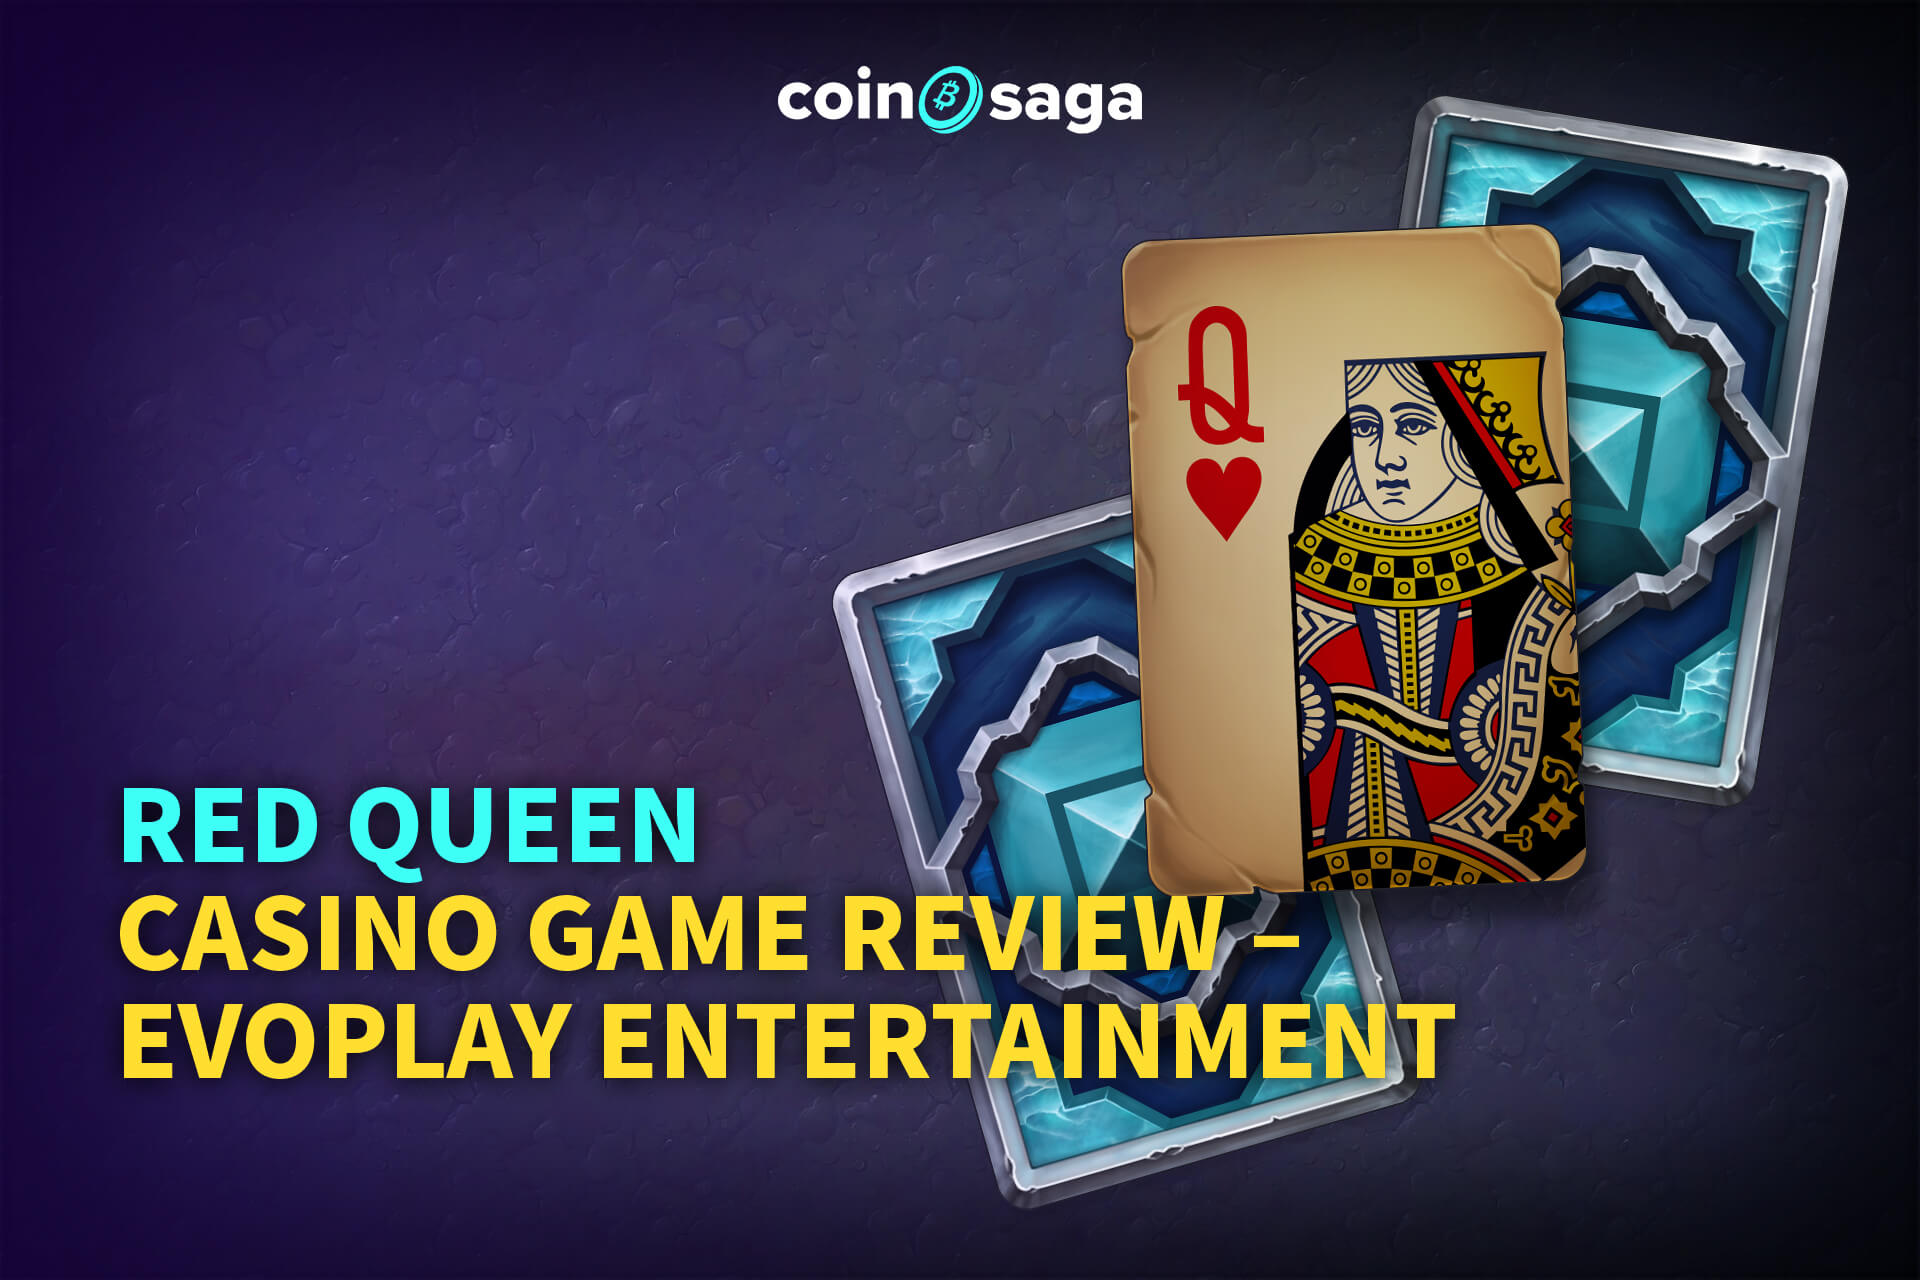 Red Queen Casino Evoplay